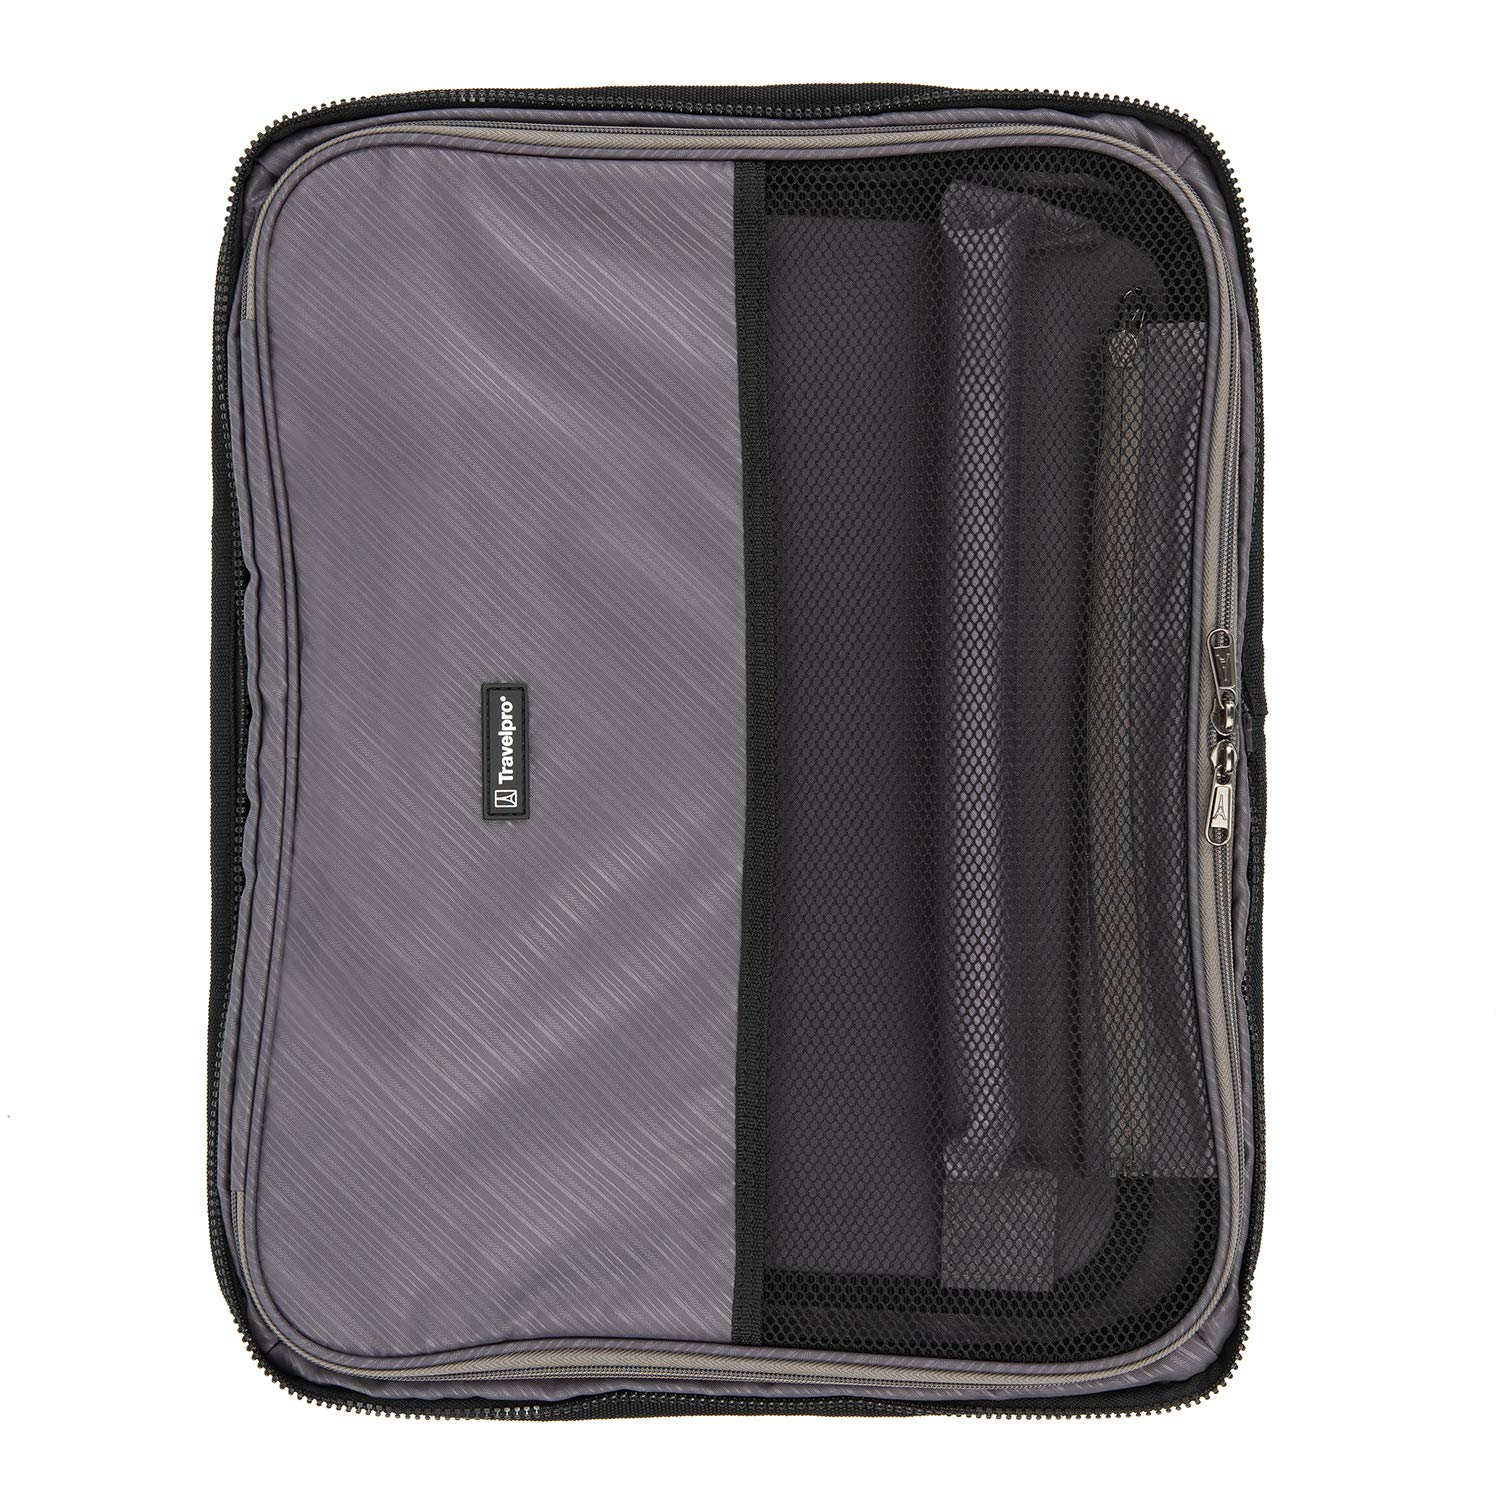 Travelpro Crew Versapack Suiter Organizer-Max Size, Grey by Travelpro